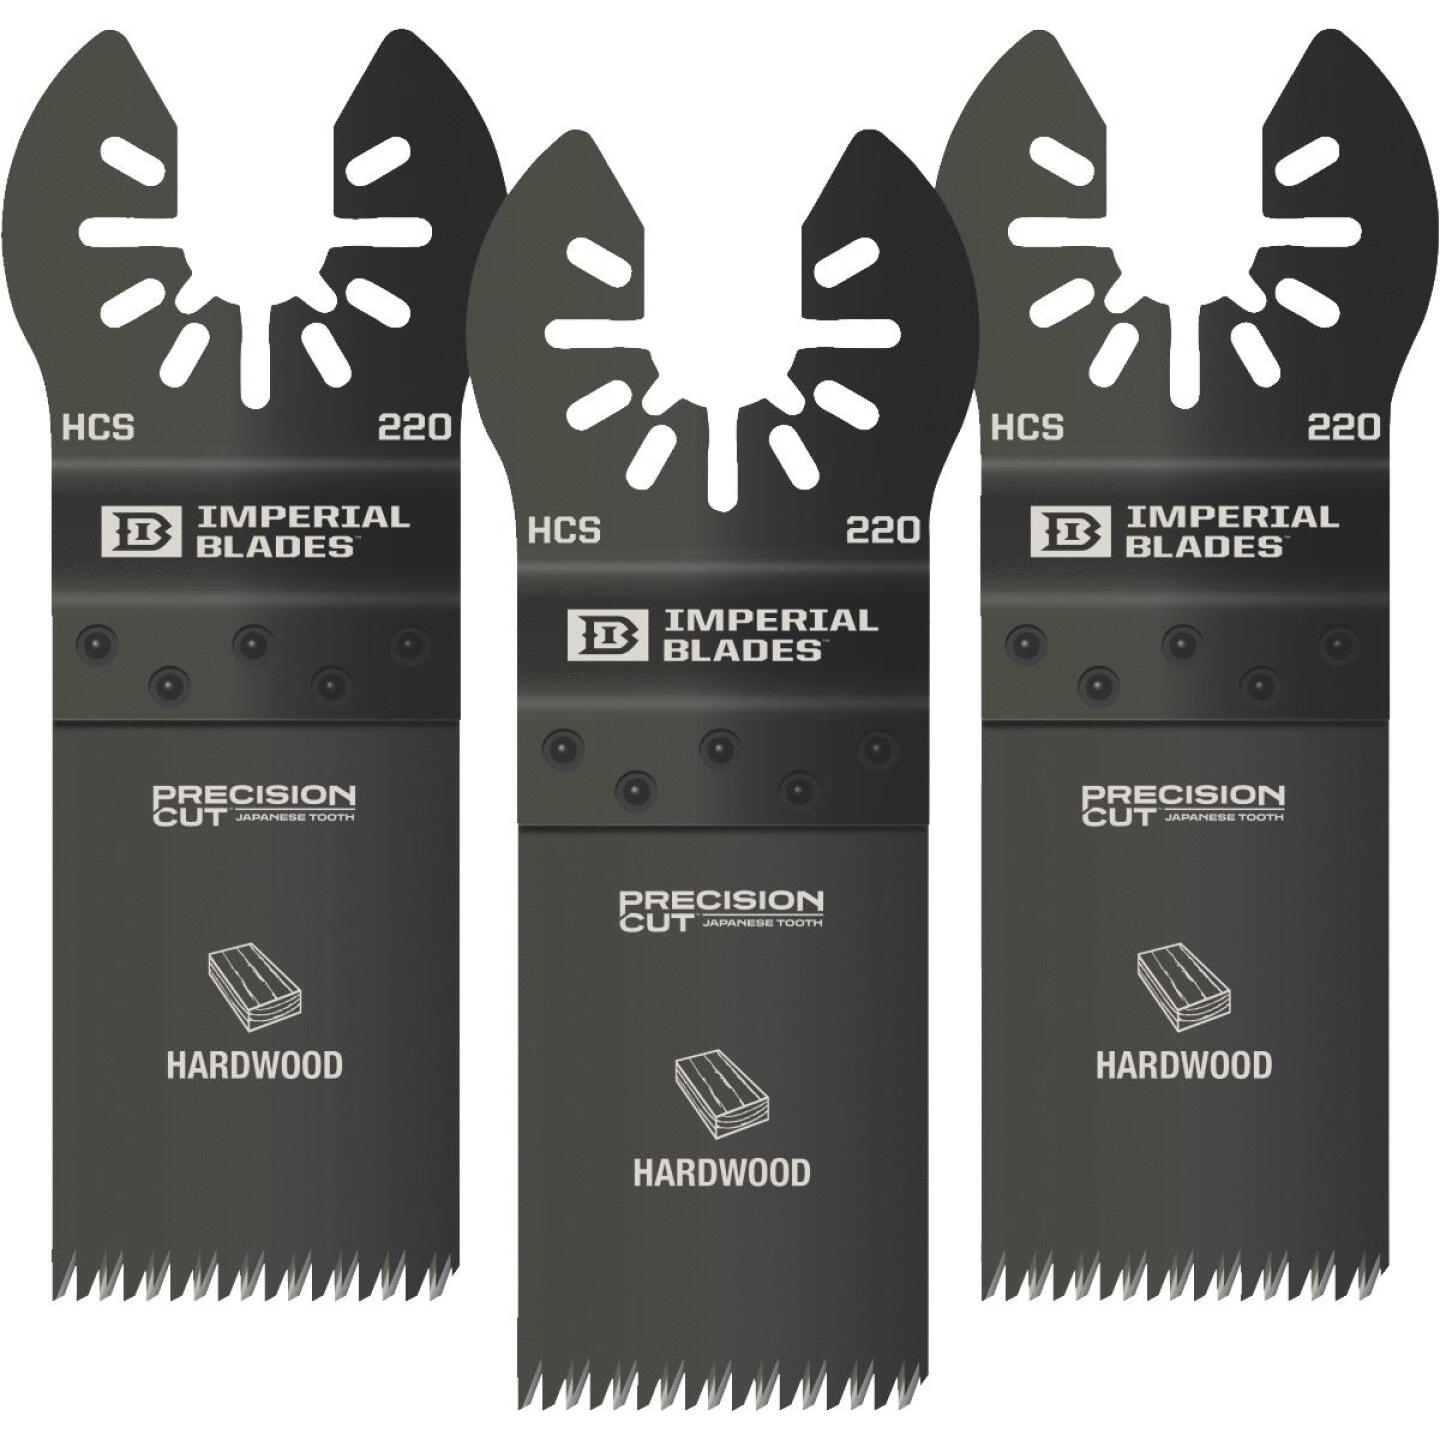 Imperial Blades One Fit 1-1/4 In. High Carbon Steel Japanese Precision Oscillating Blade Image 1